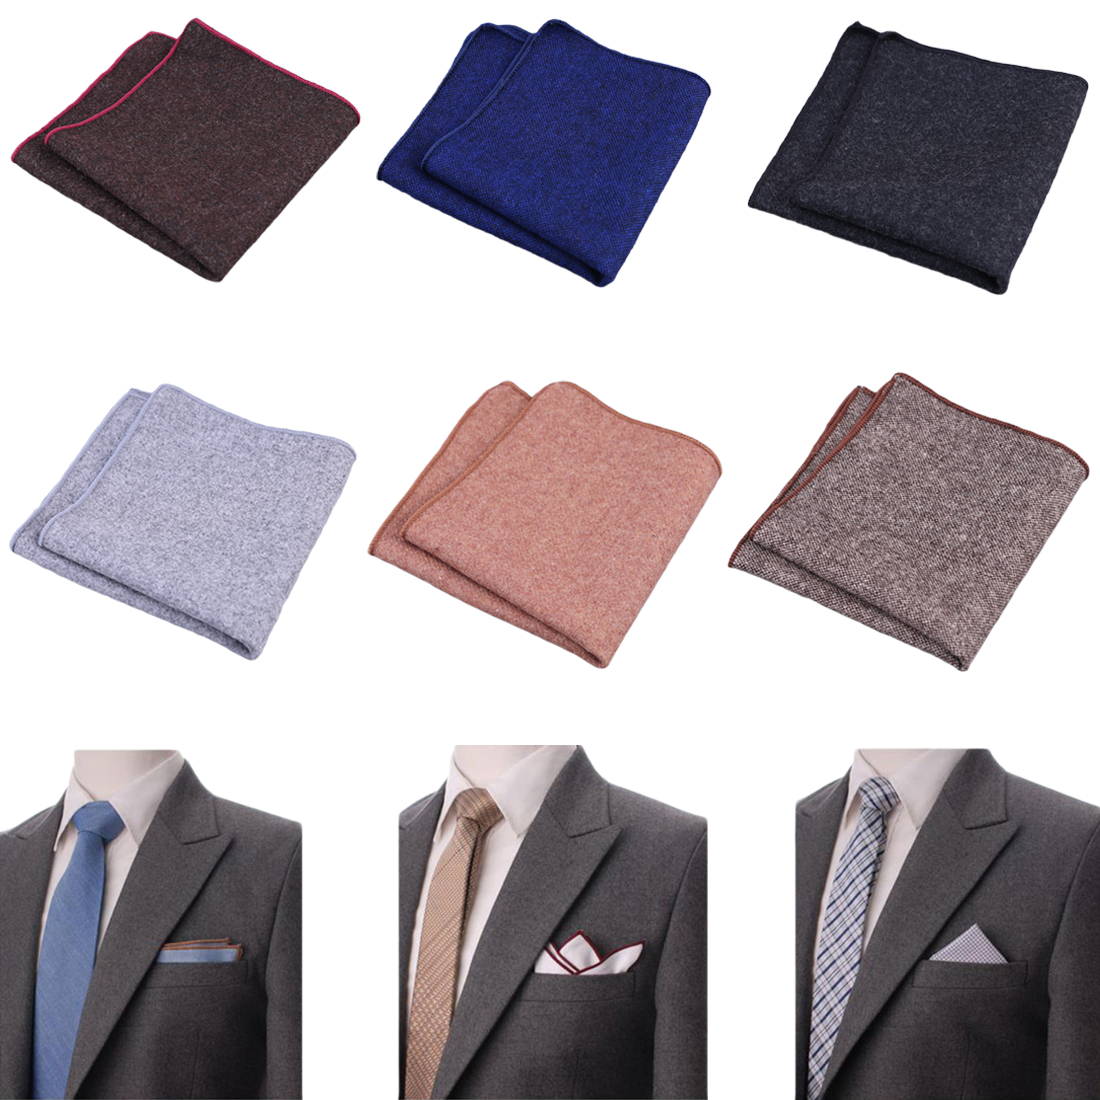 New Hankerchief Scarves Vintage Wool Hankies Men's Pocket Square Handkerchiefs Striped Solid Cotton 23*23cm